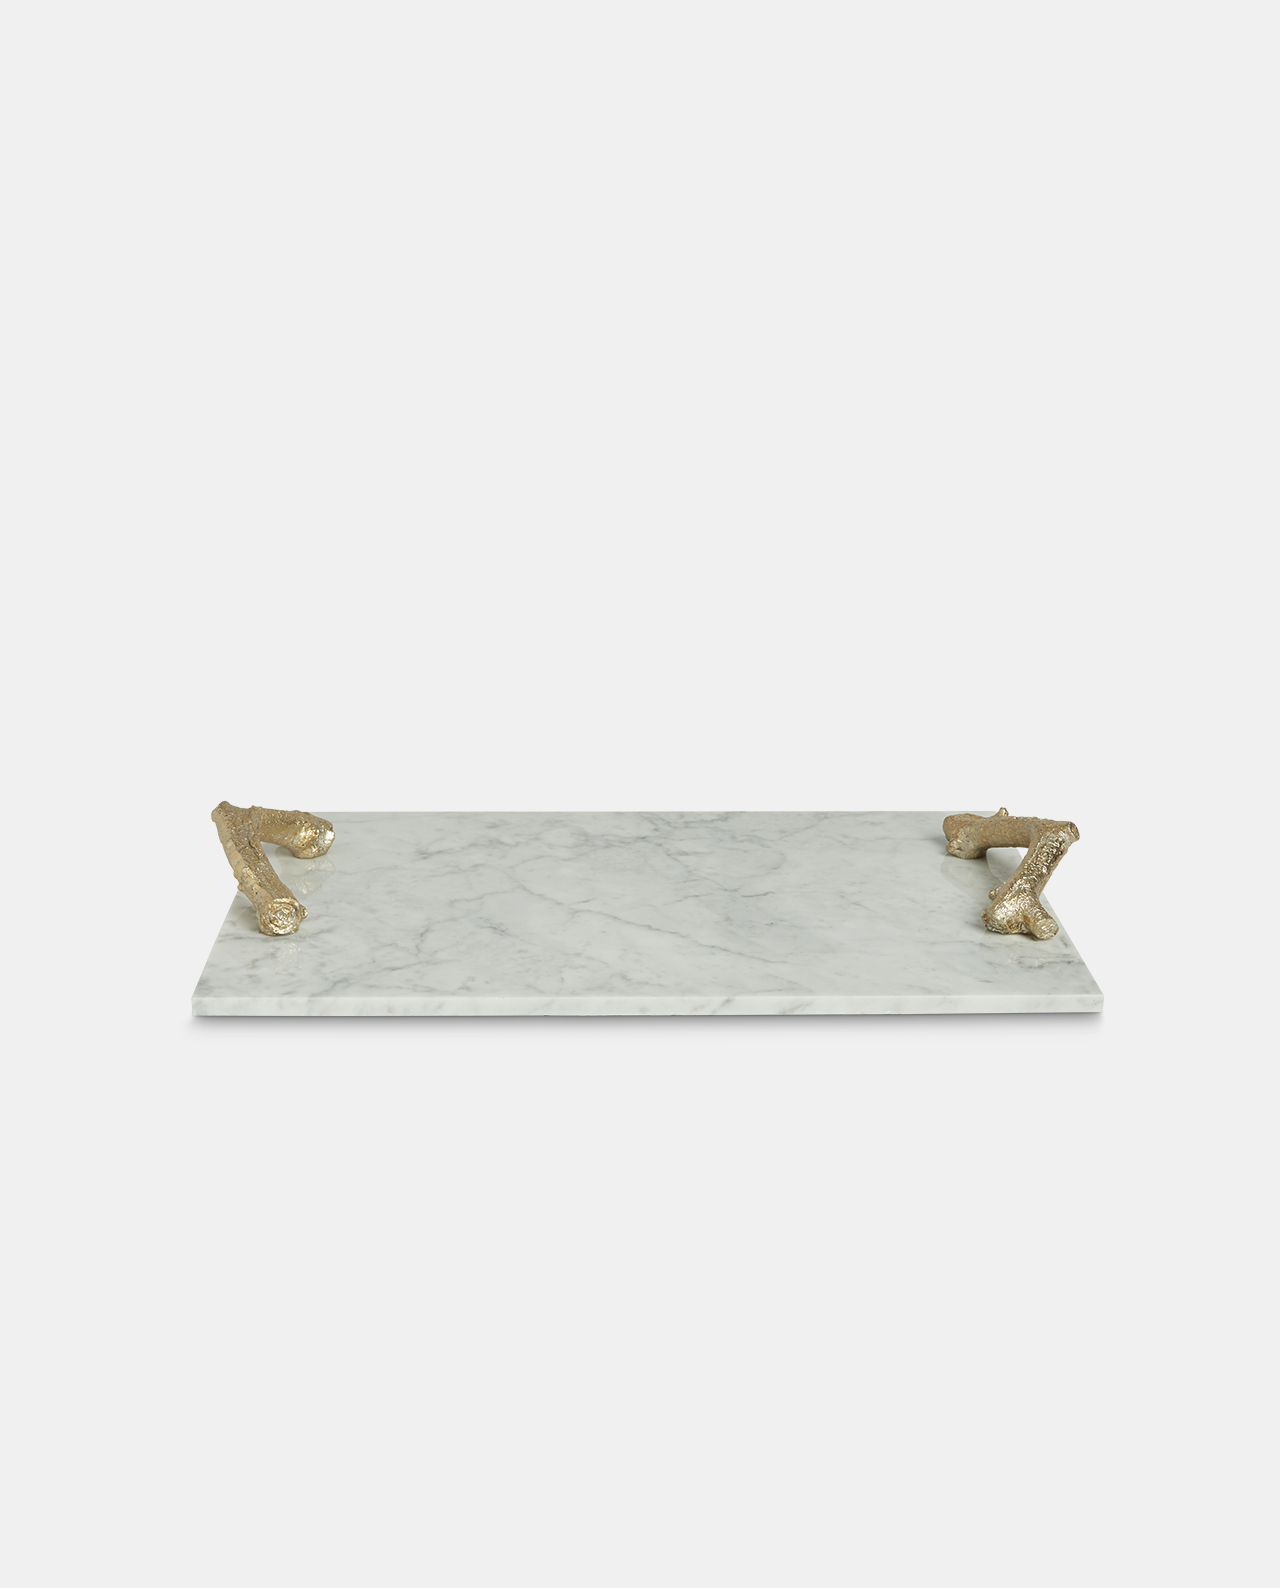 Marble Tray with Gold Handles